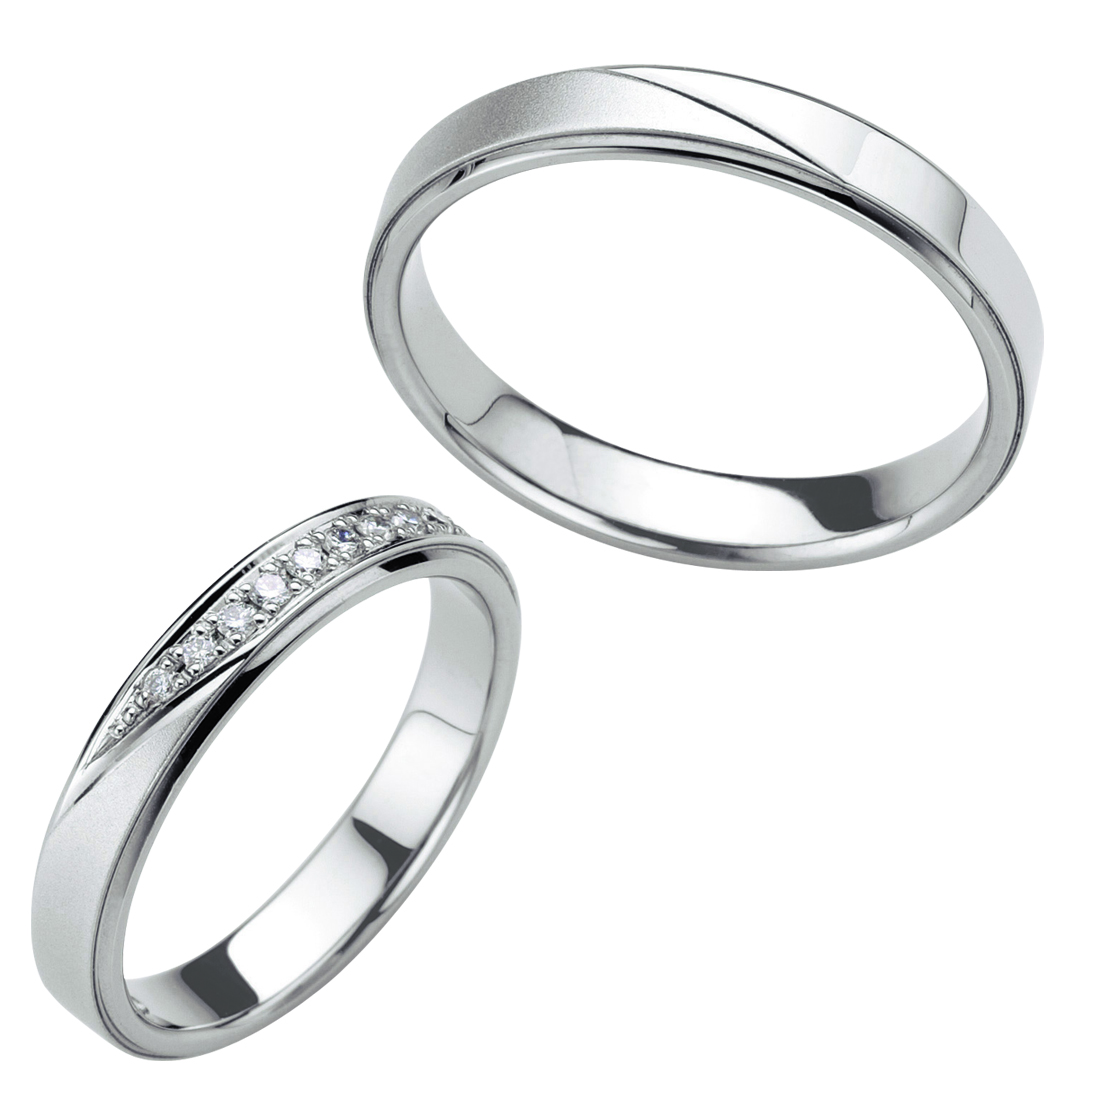 Wedding Bands - Singapore:Sarara_01